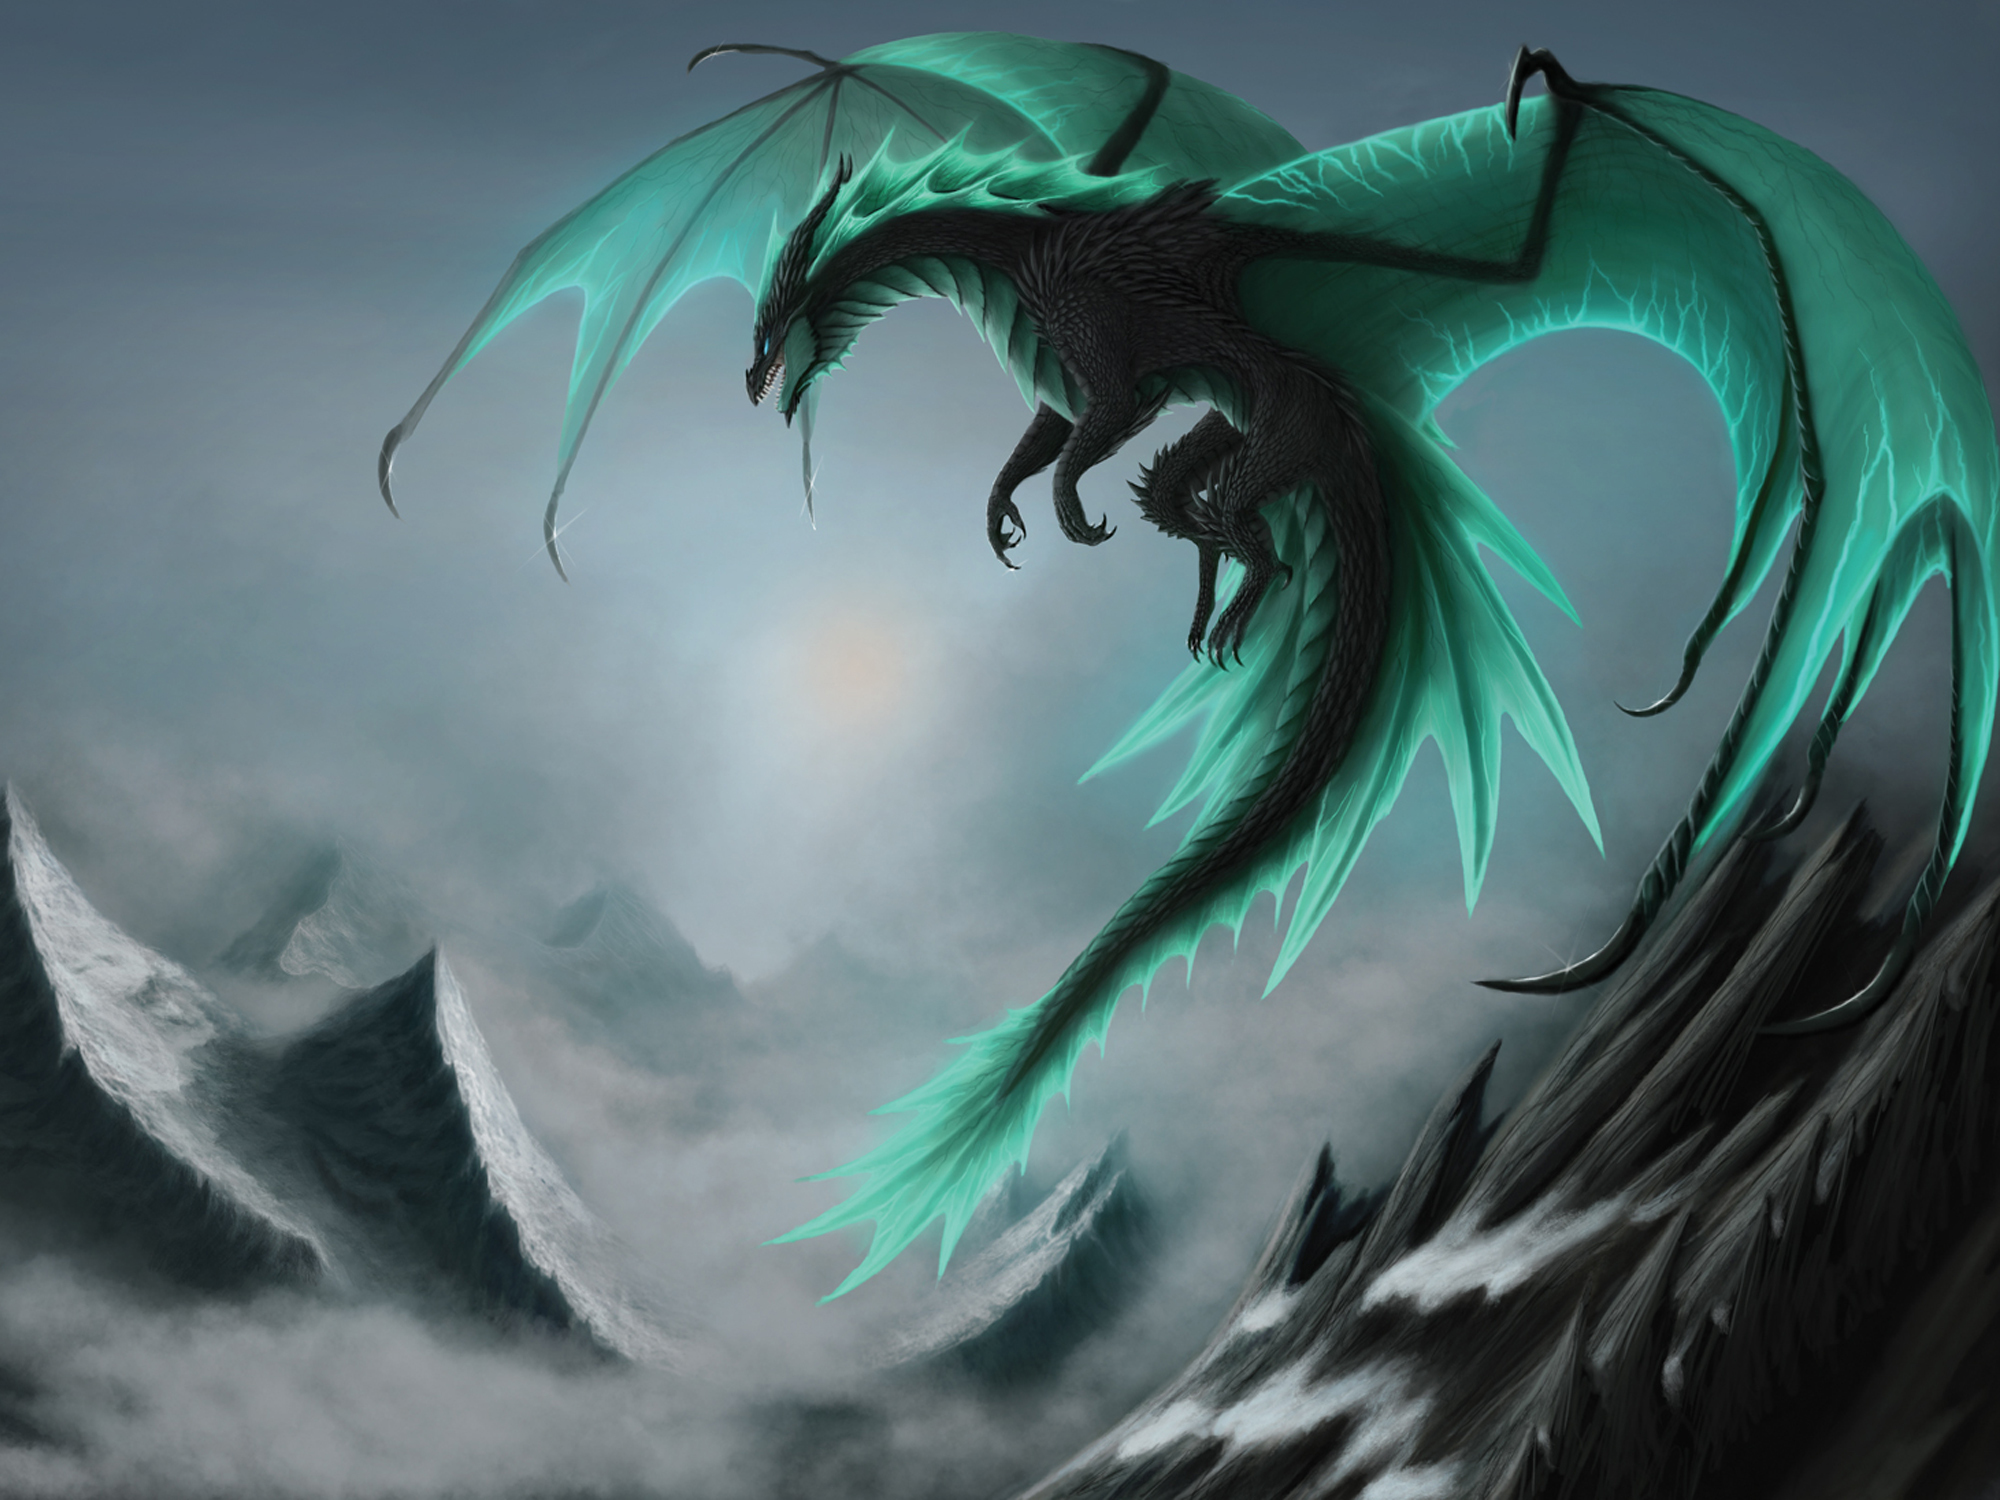 Fantasy Dragon wallpapers (Desktop, Phone, Tablet) - Awesome Desktop ...